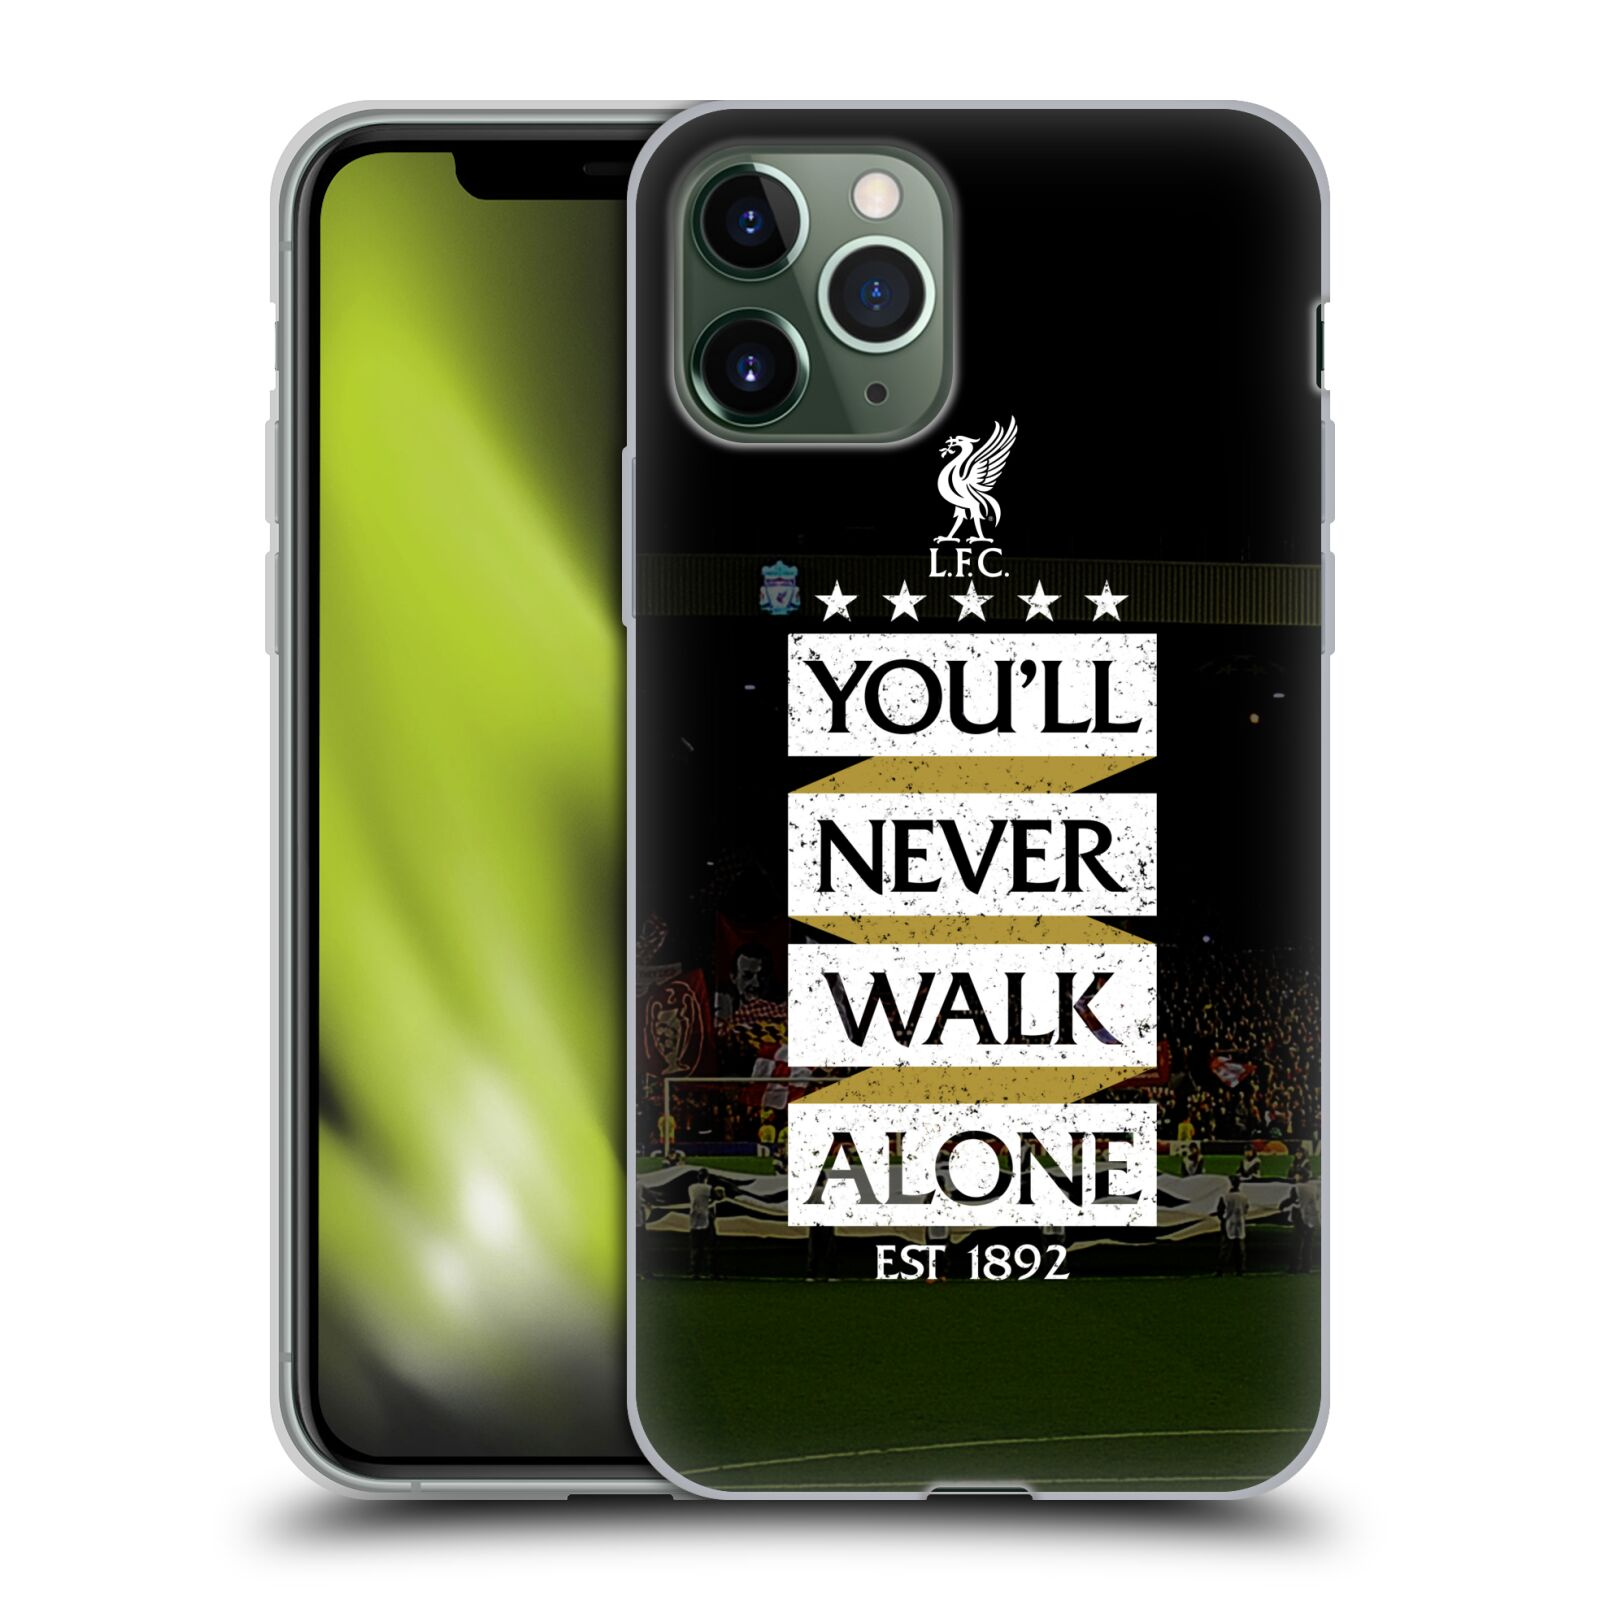 Silikonové pouzdro na mobil Apple iPhone 11 Pro - Head Case - LFC You'll Never Walk Alone